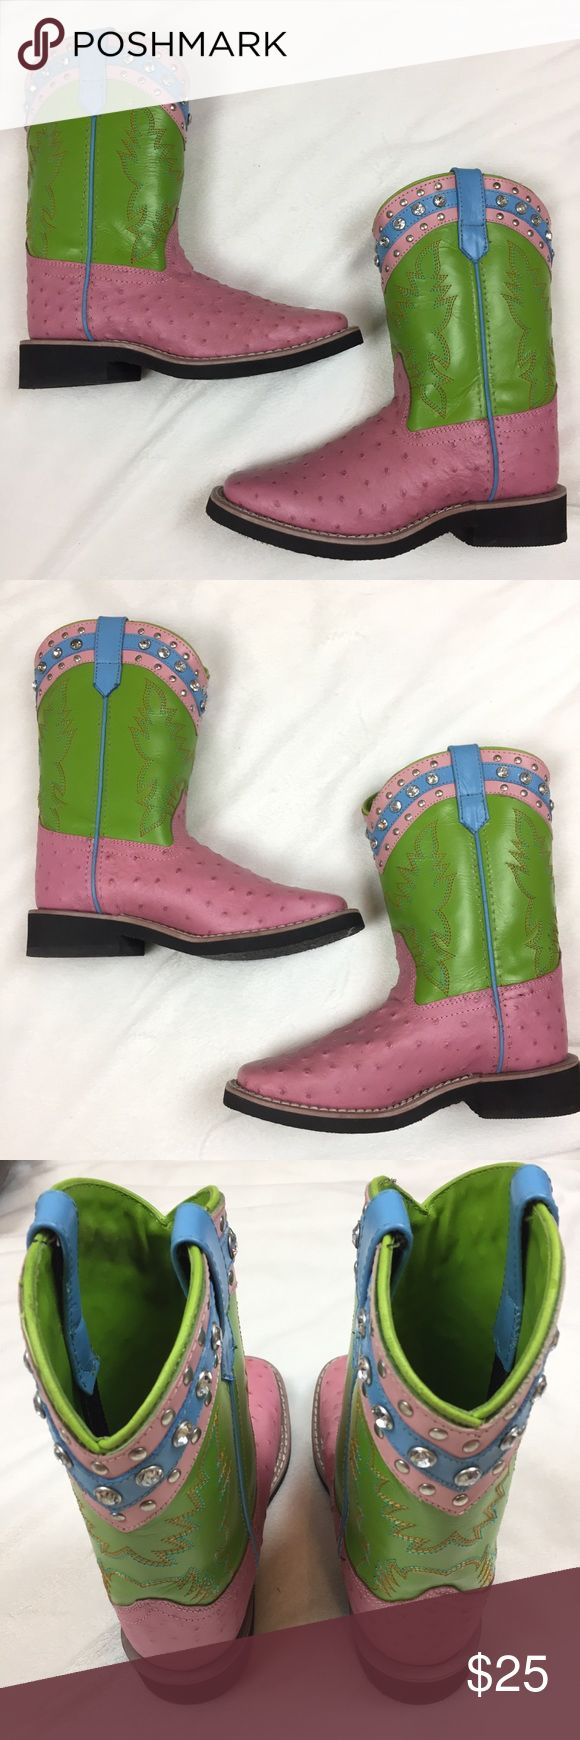 """SMOKY MOUNTAIN Ostrich Leather Cowboy Boots In excellent condition! Genuine leather. Rhinestones. 1 1/4"""" heel. 10 1/4"""" height. A couple light marks o toes. They fit big. More like a 2-3. Non-smoking pet free home.  Suggested User  Fast Shipping  Offers Welcomed  Over 300 Items To Shop Over 1500 5⭐️ Ratings Smokey Mountain Boots Shoes Boots"""